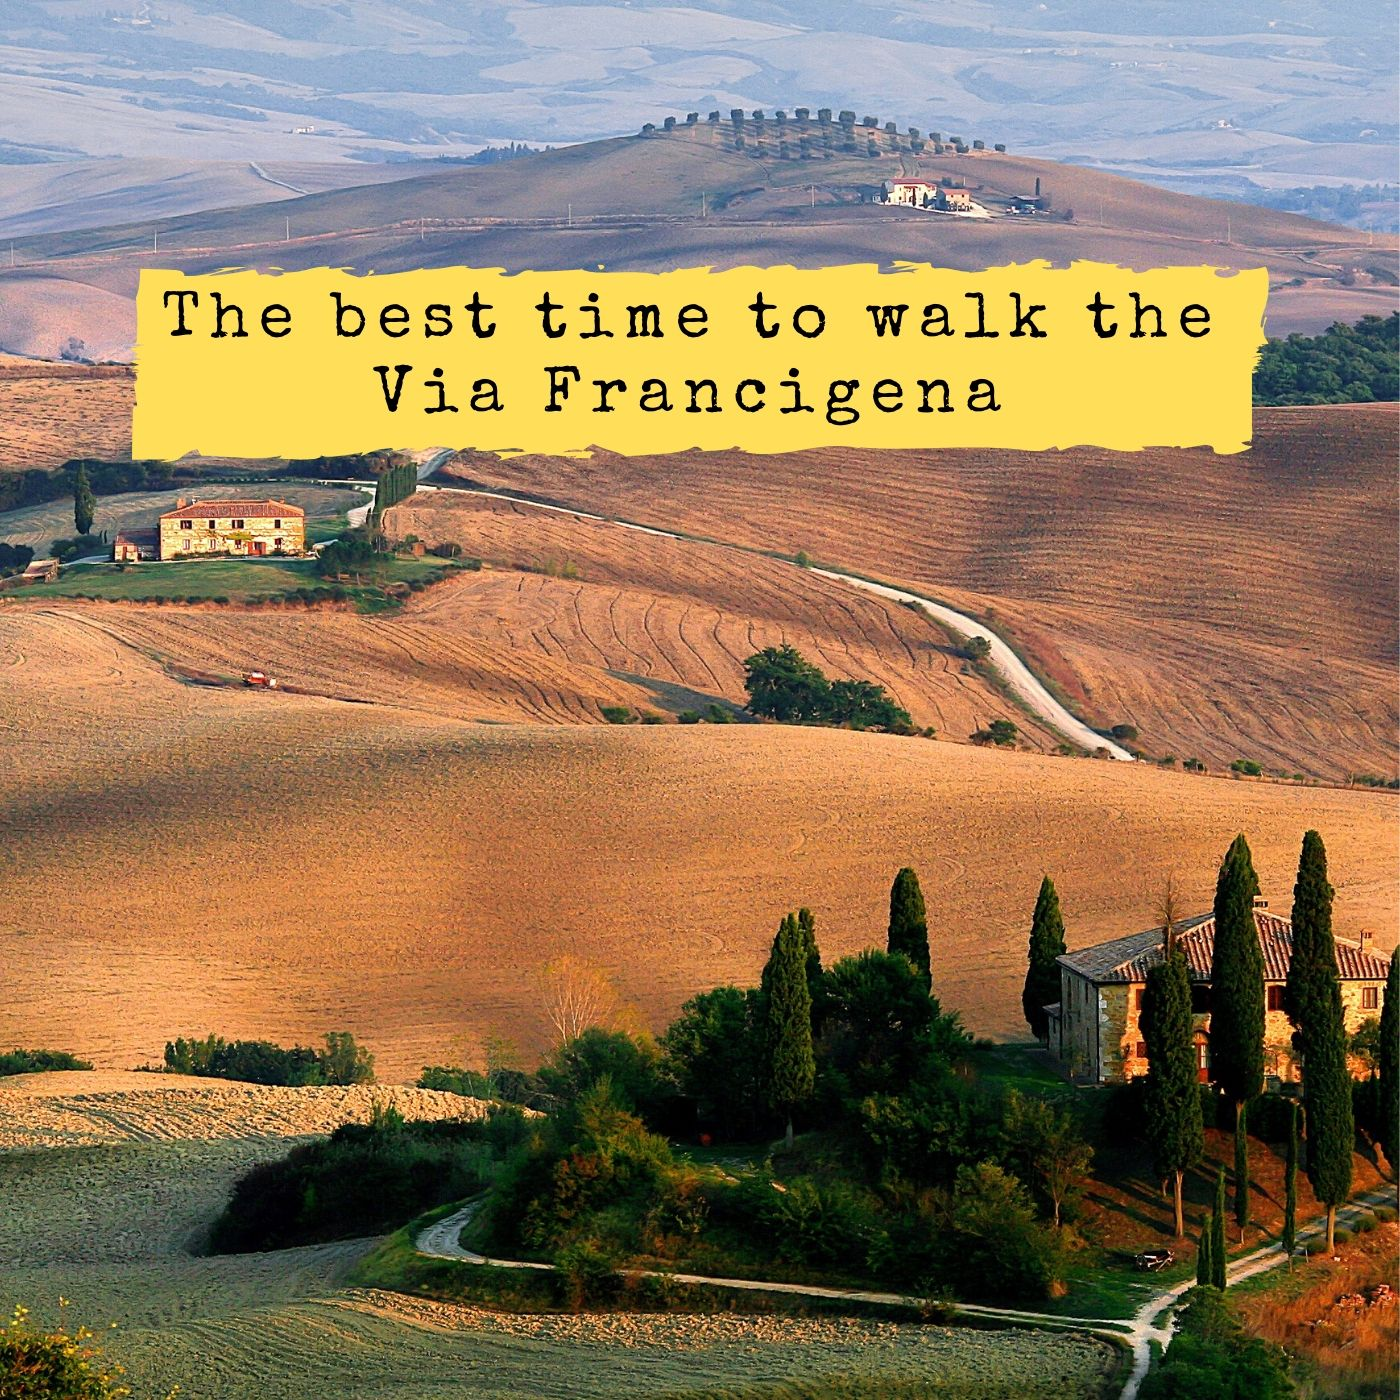 BEST TIME VIA FRANCIGENA GALIWONDERS